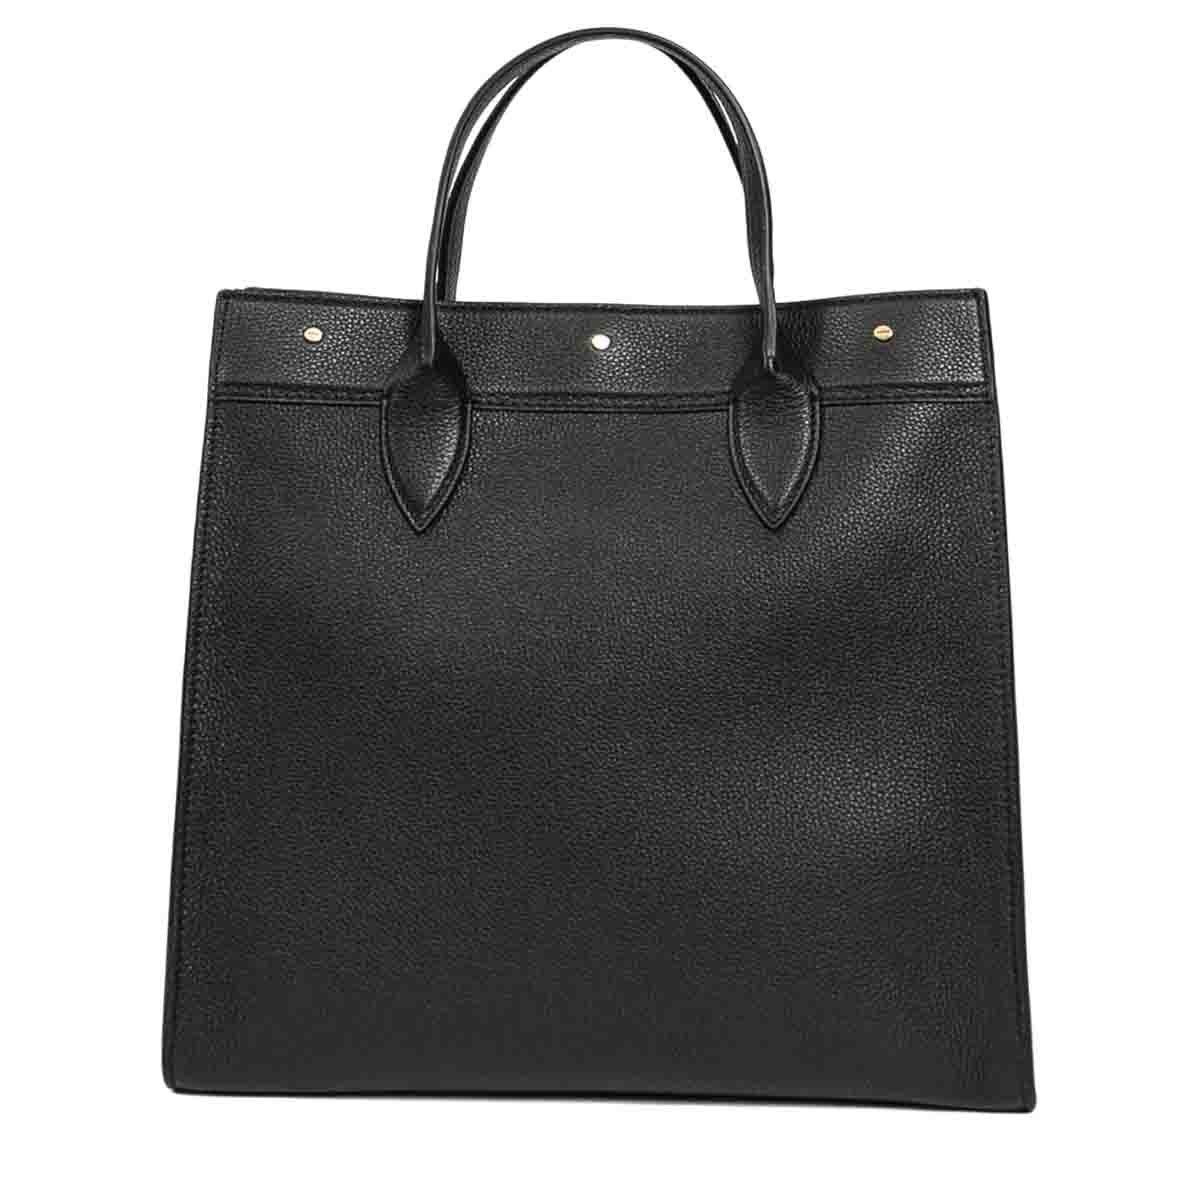 Borbonese BORBONESE WOMEN'S 924491I74100 BLACK LEATHER HANDBAG